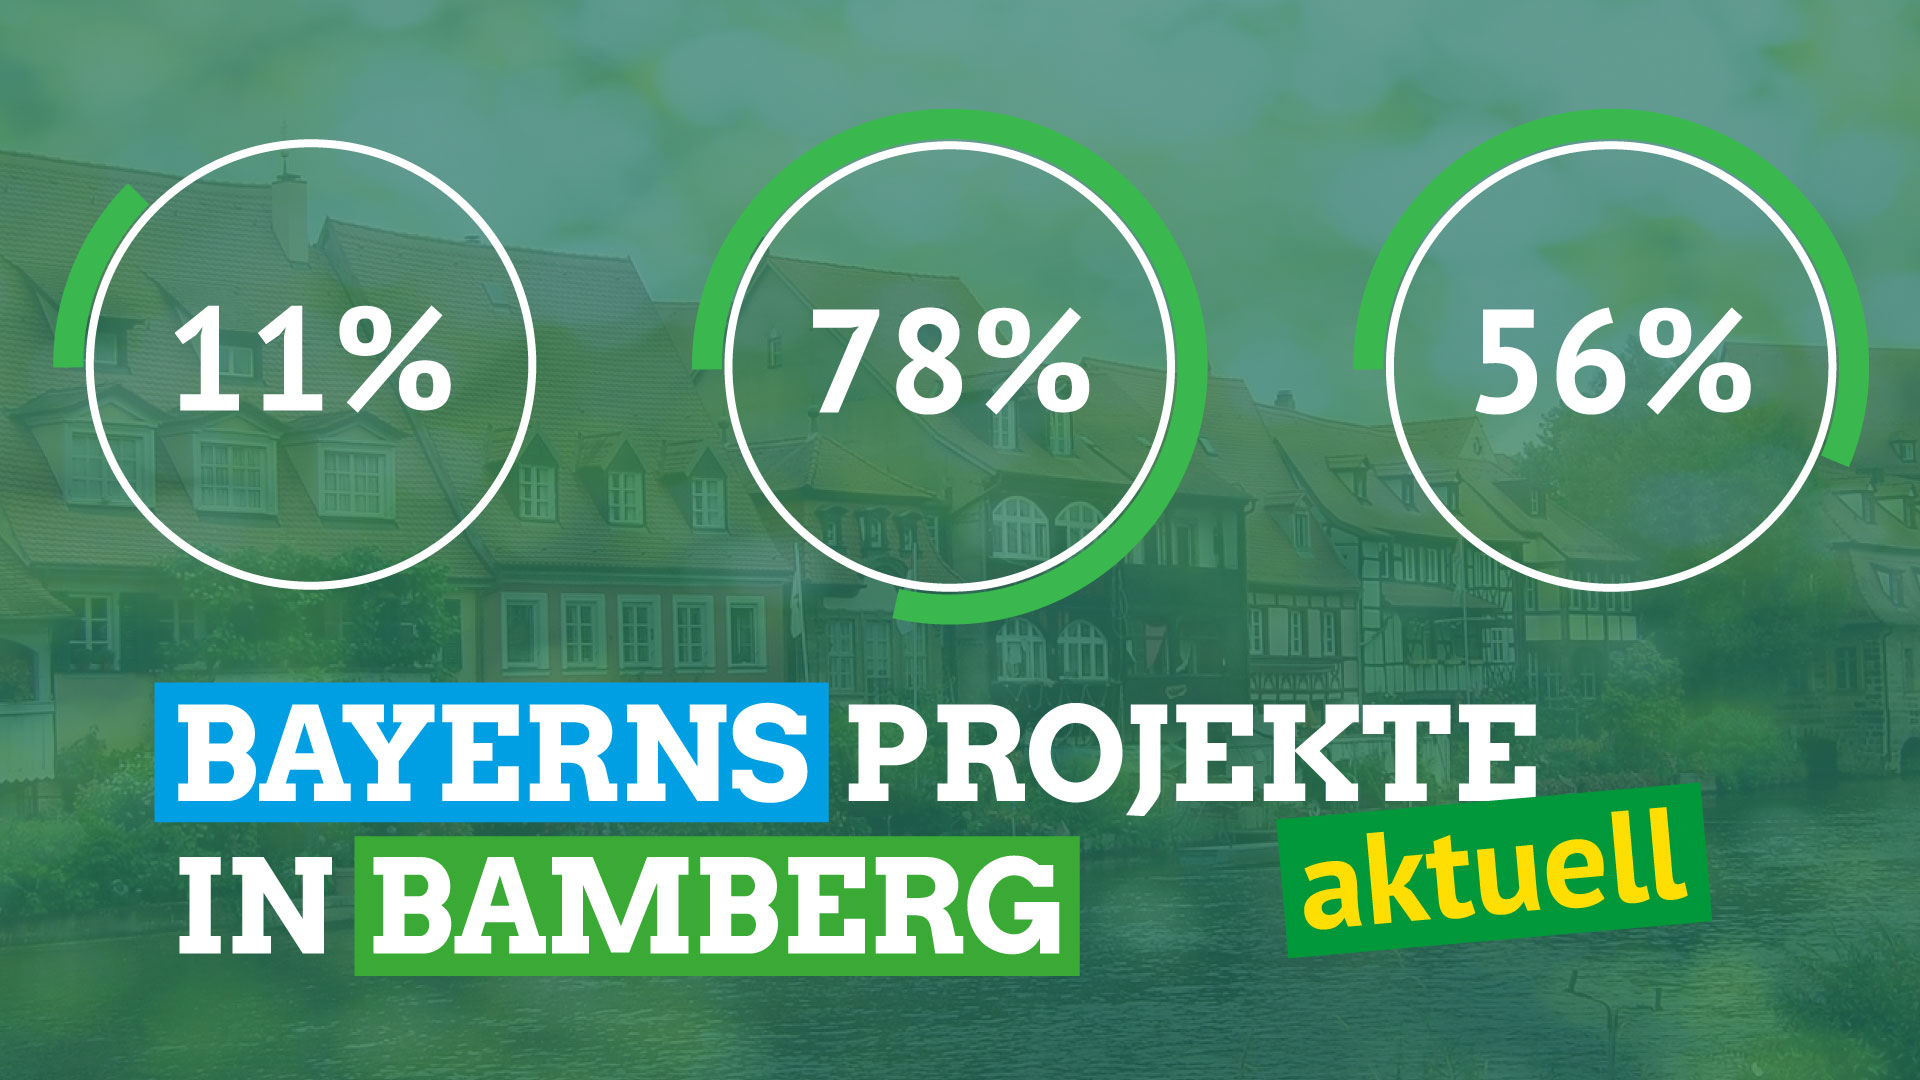 Bayerns Projekte in Bamberg - aktuell